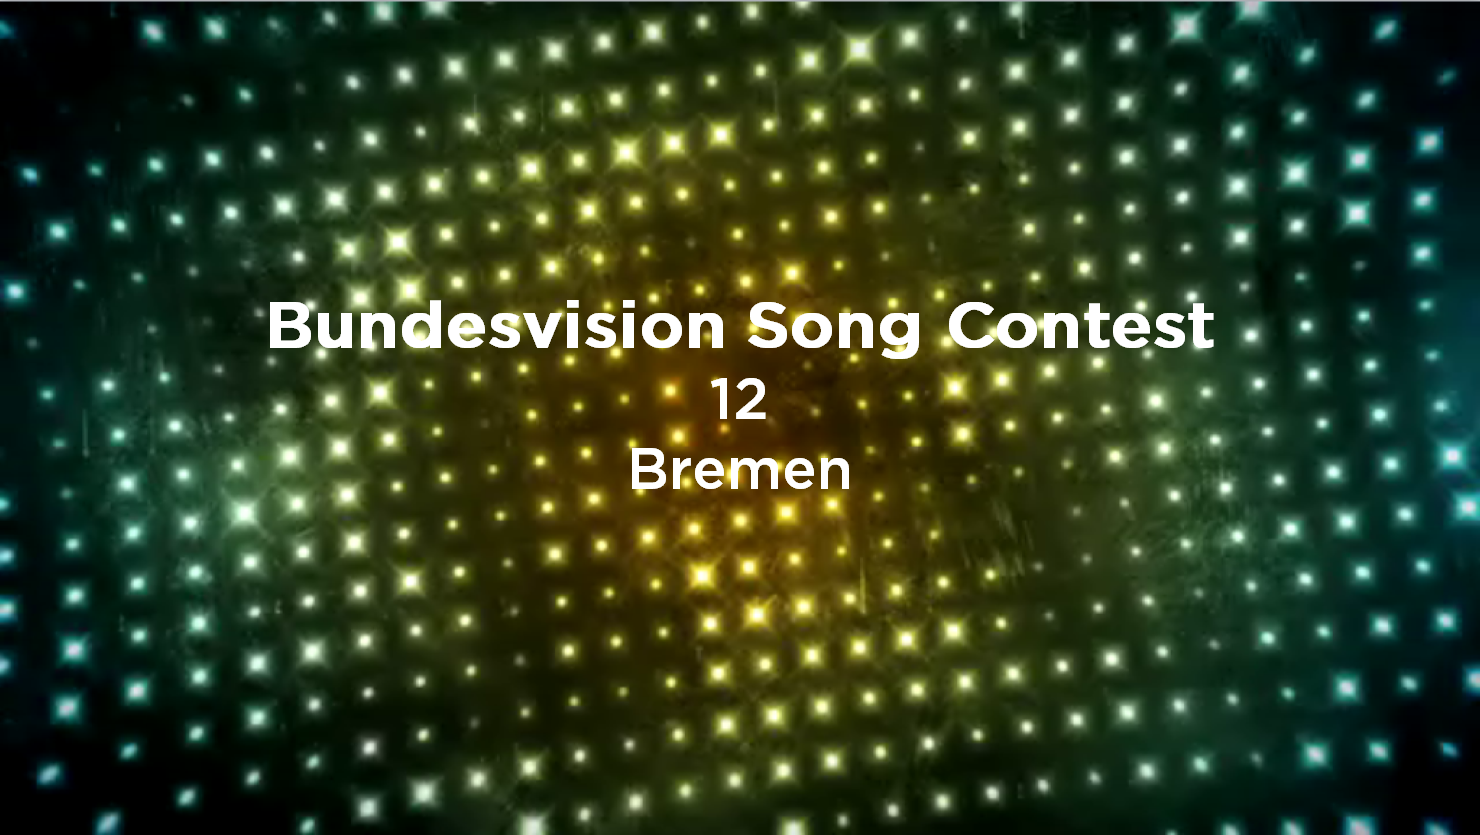 Bundesvision Song Contest 12